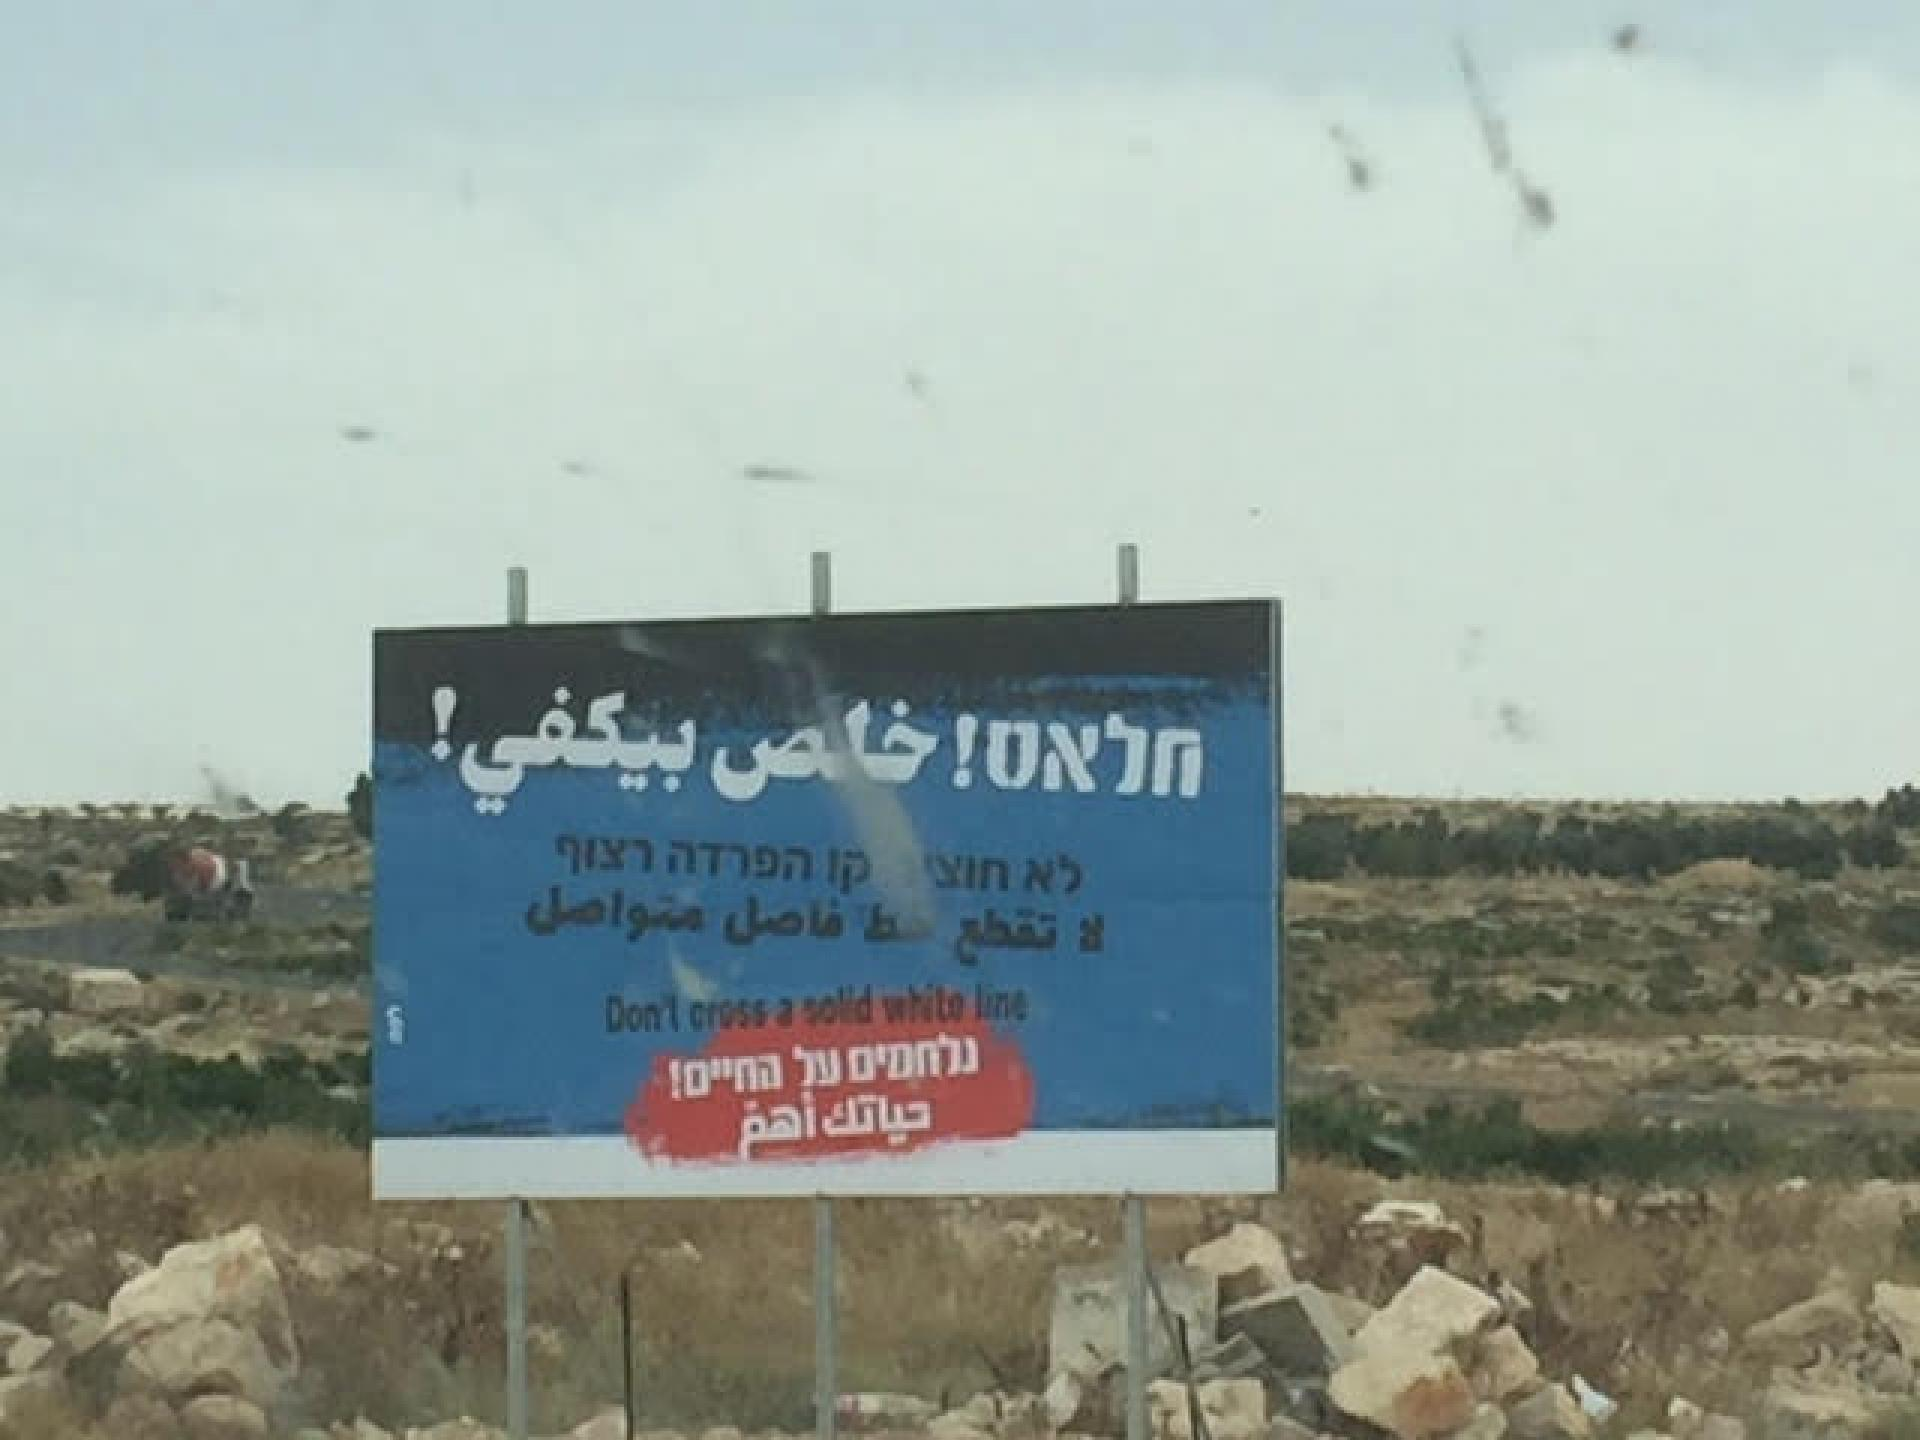 On road 60 and on road 317 there are these signs in two languages